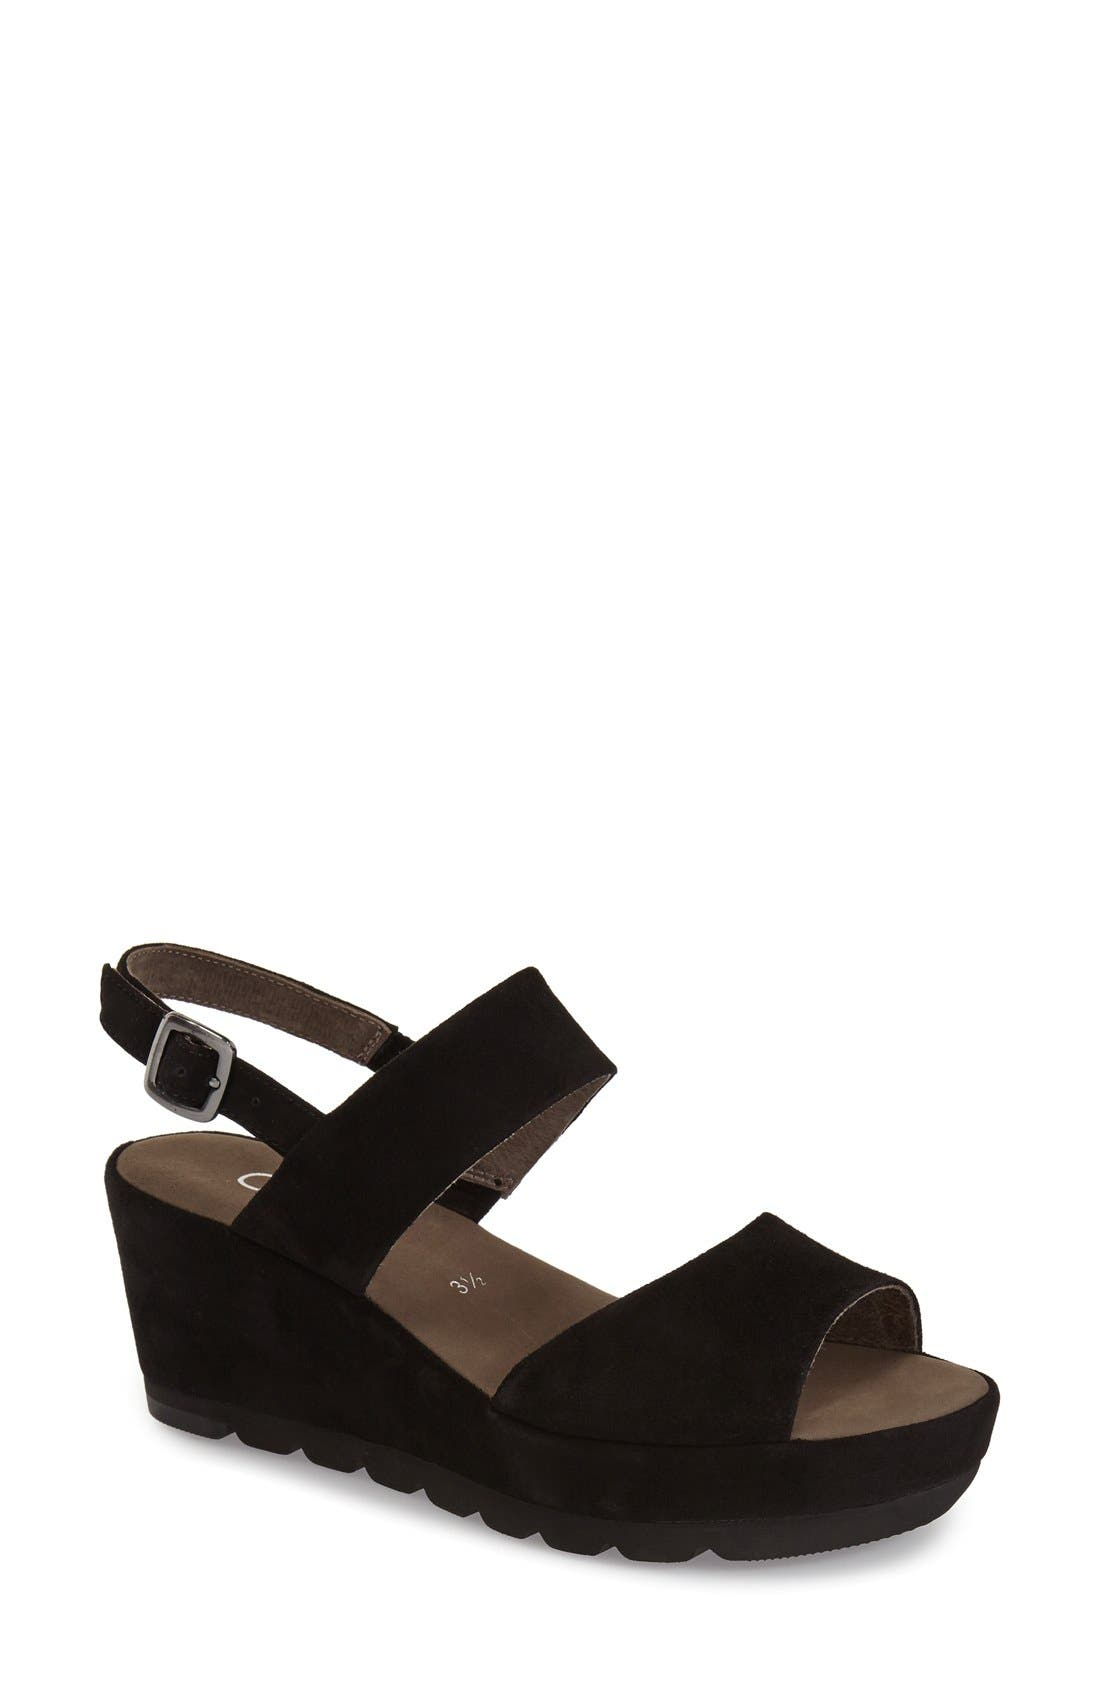 Main Image - Gabor Two-Strap Sandal (Women)